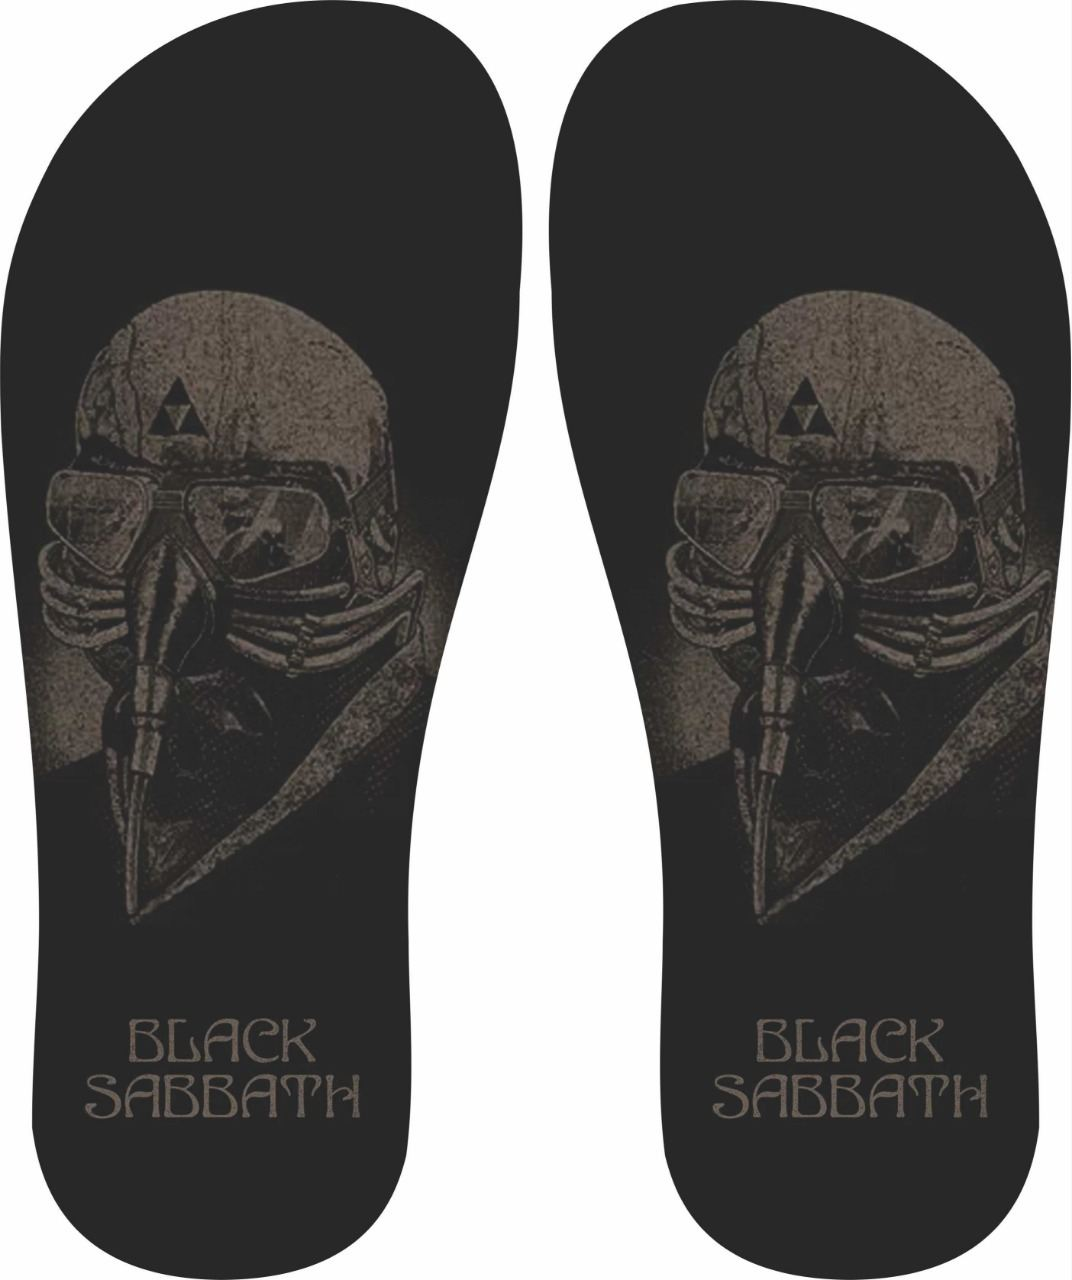 Chinelo Black Sabbath - Asterion Chinelos Personalizados